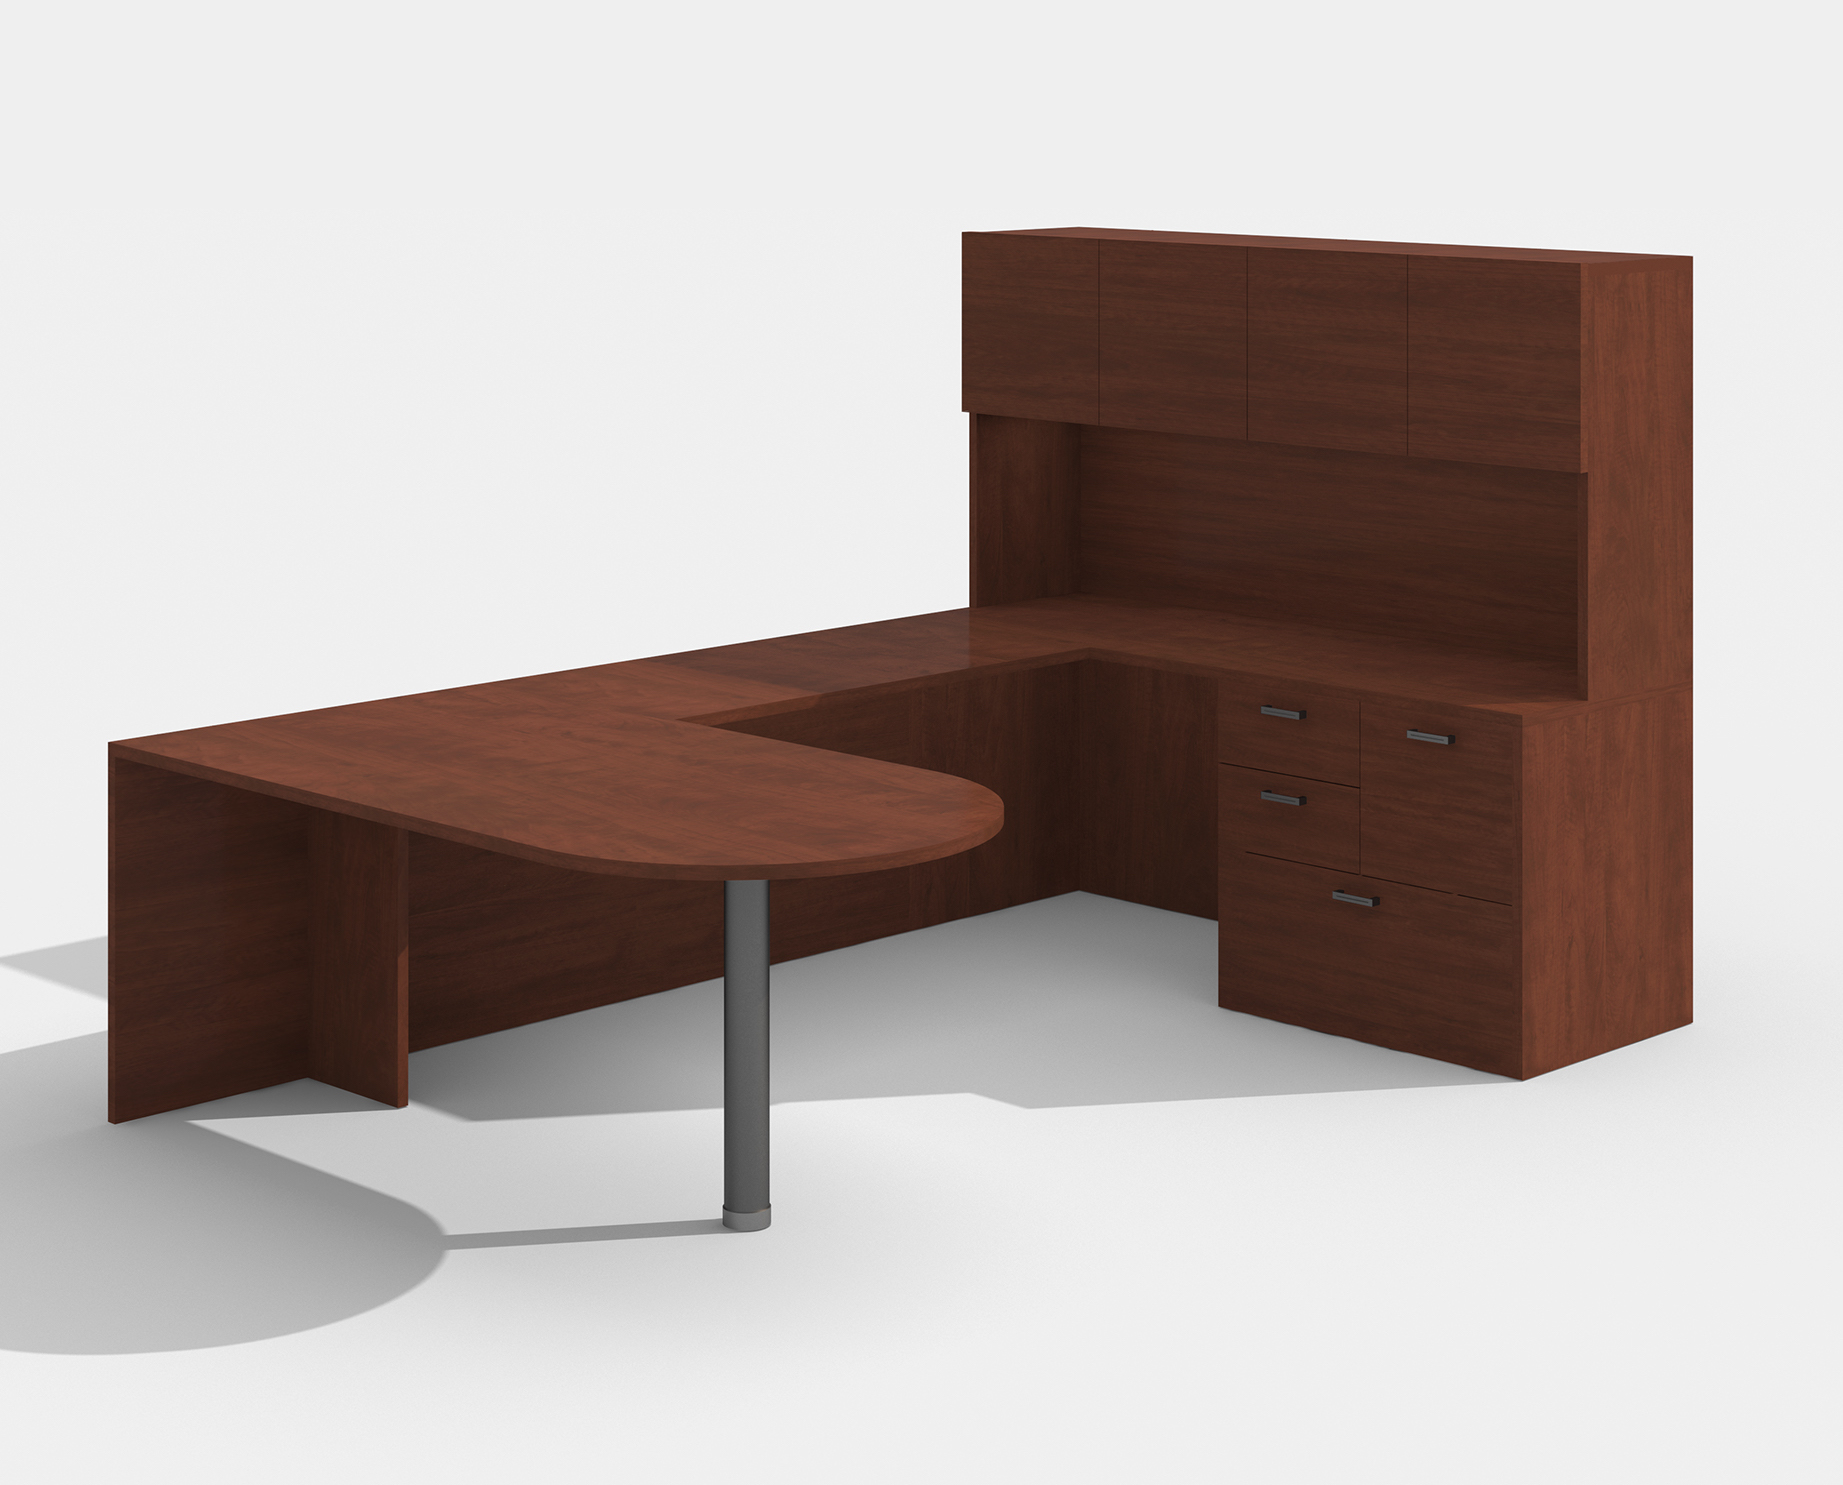 cherry am-363n amber bullet shape u desk with hutch